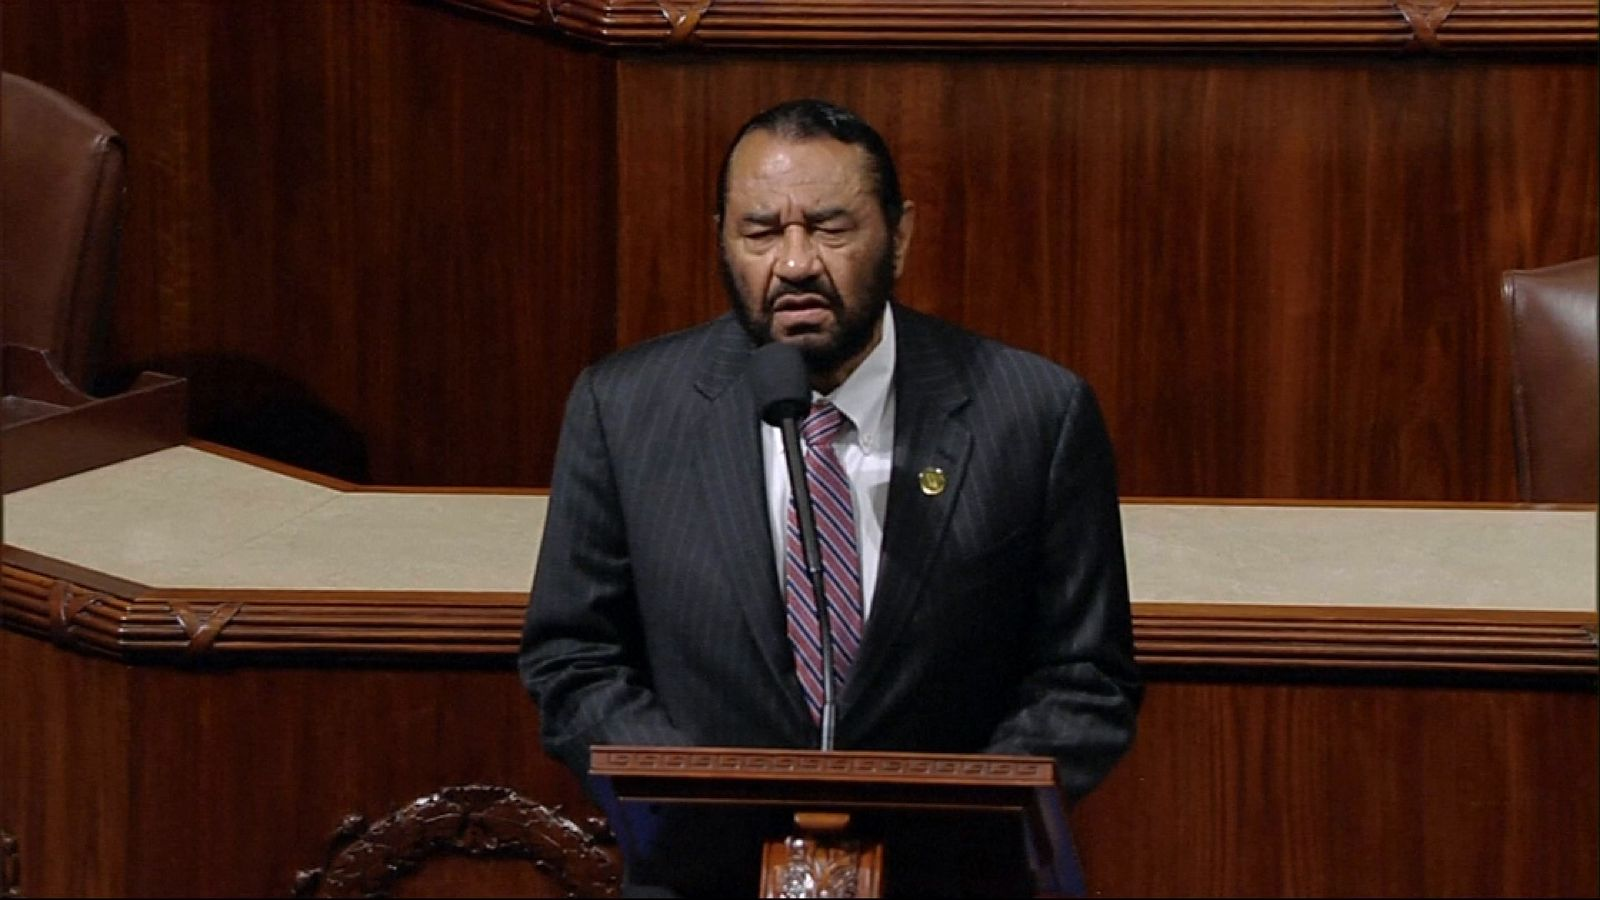 Congressman Al Green has called for President Trump to be impeached